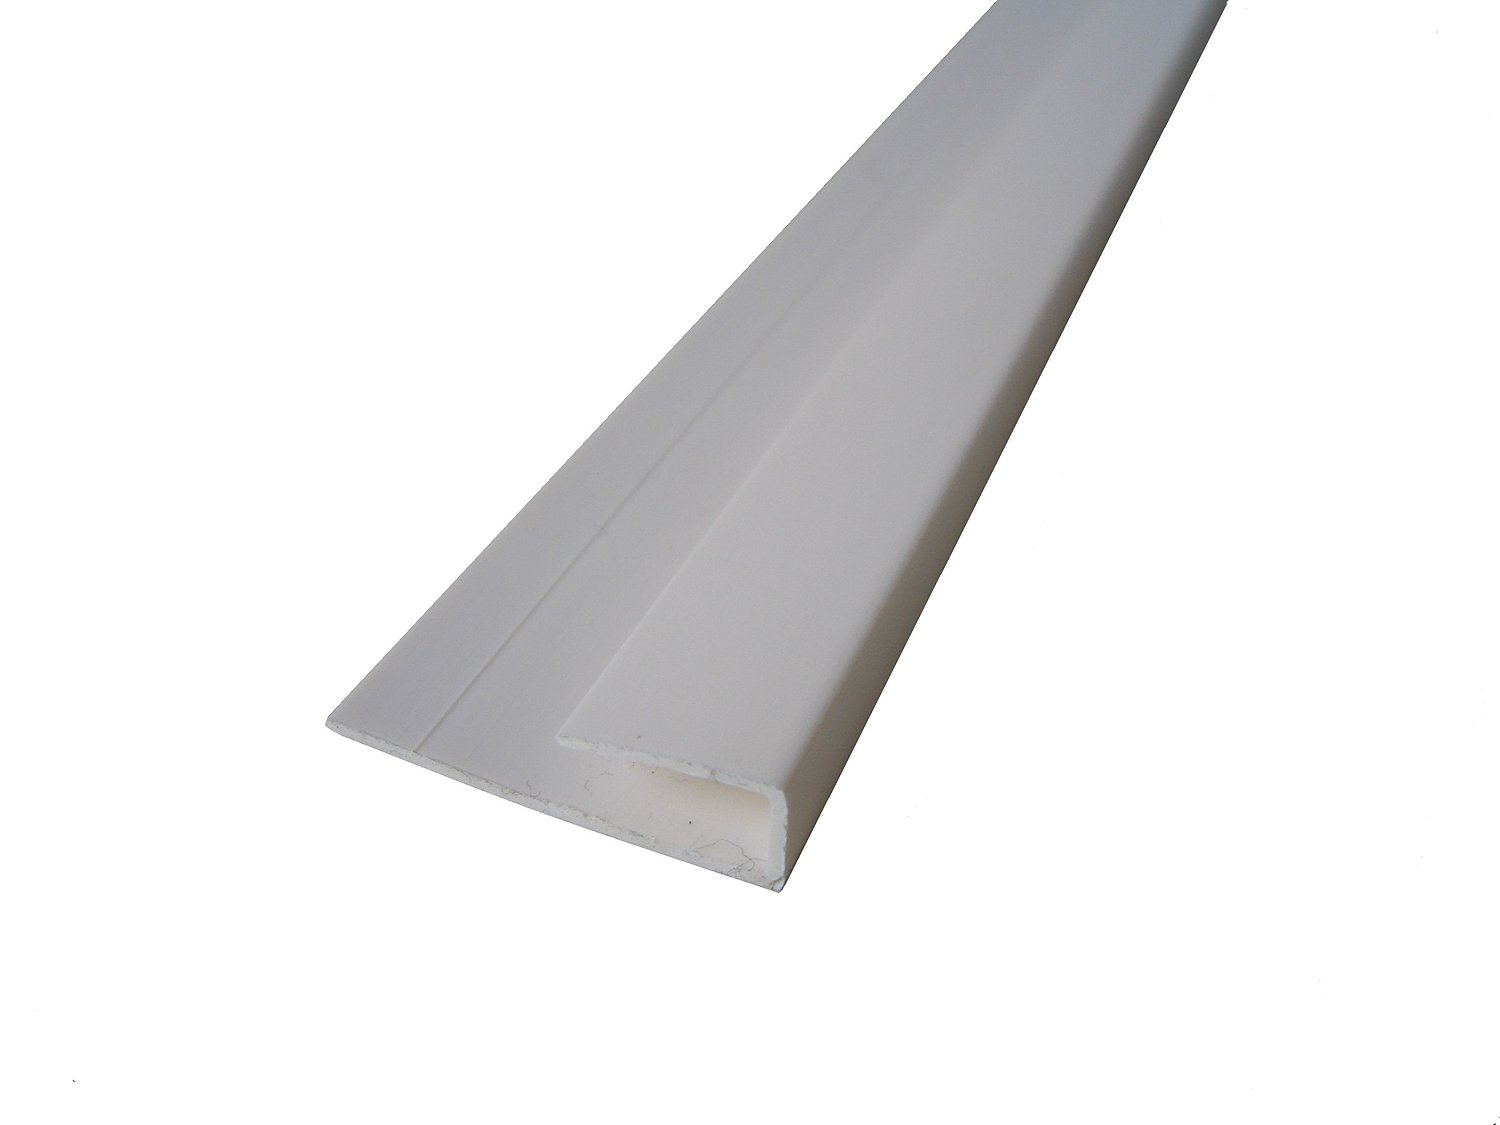 White Panel Trim Perfect for Bathroom Kitchen Shower Wall PVC Cladding Panels-8mm End Cap Edging Trim-100% Waterproof-Use with Claddtech Adhesive